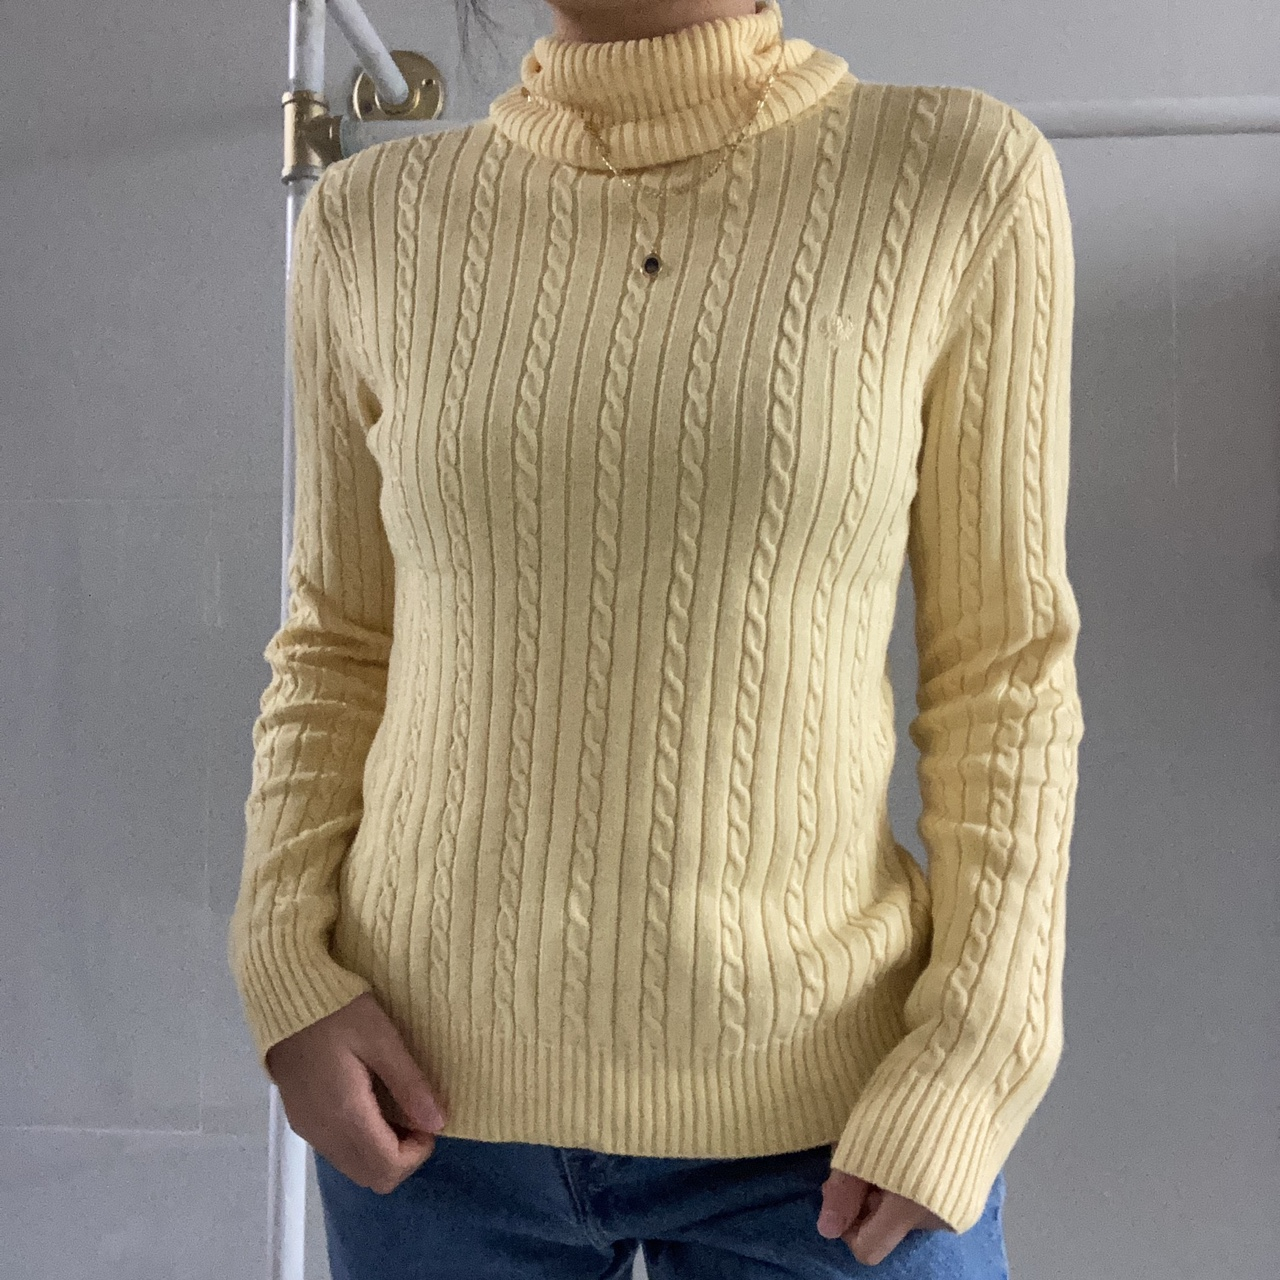 Pastel Light Yellow Braided Cable Knit Texture Turtleneck Long